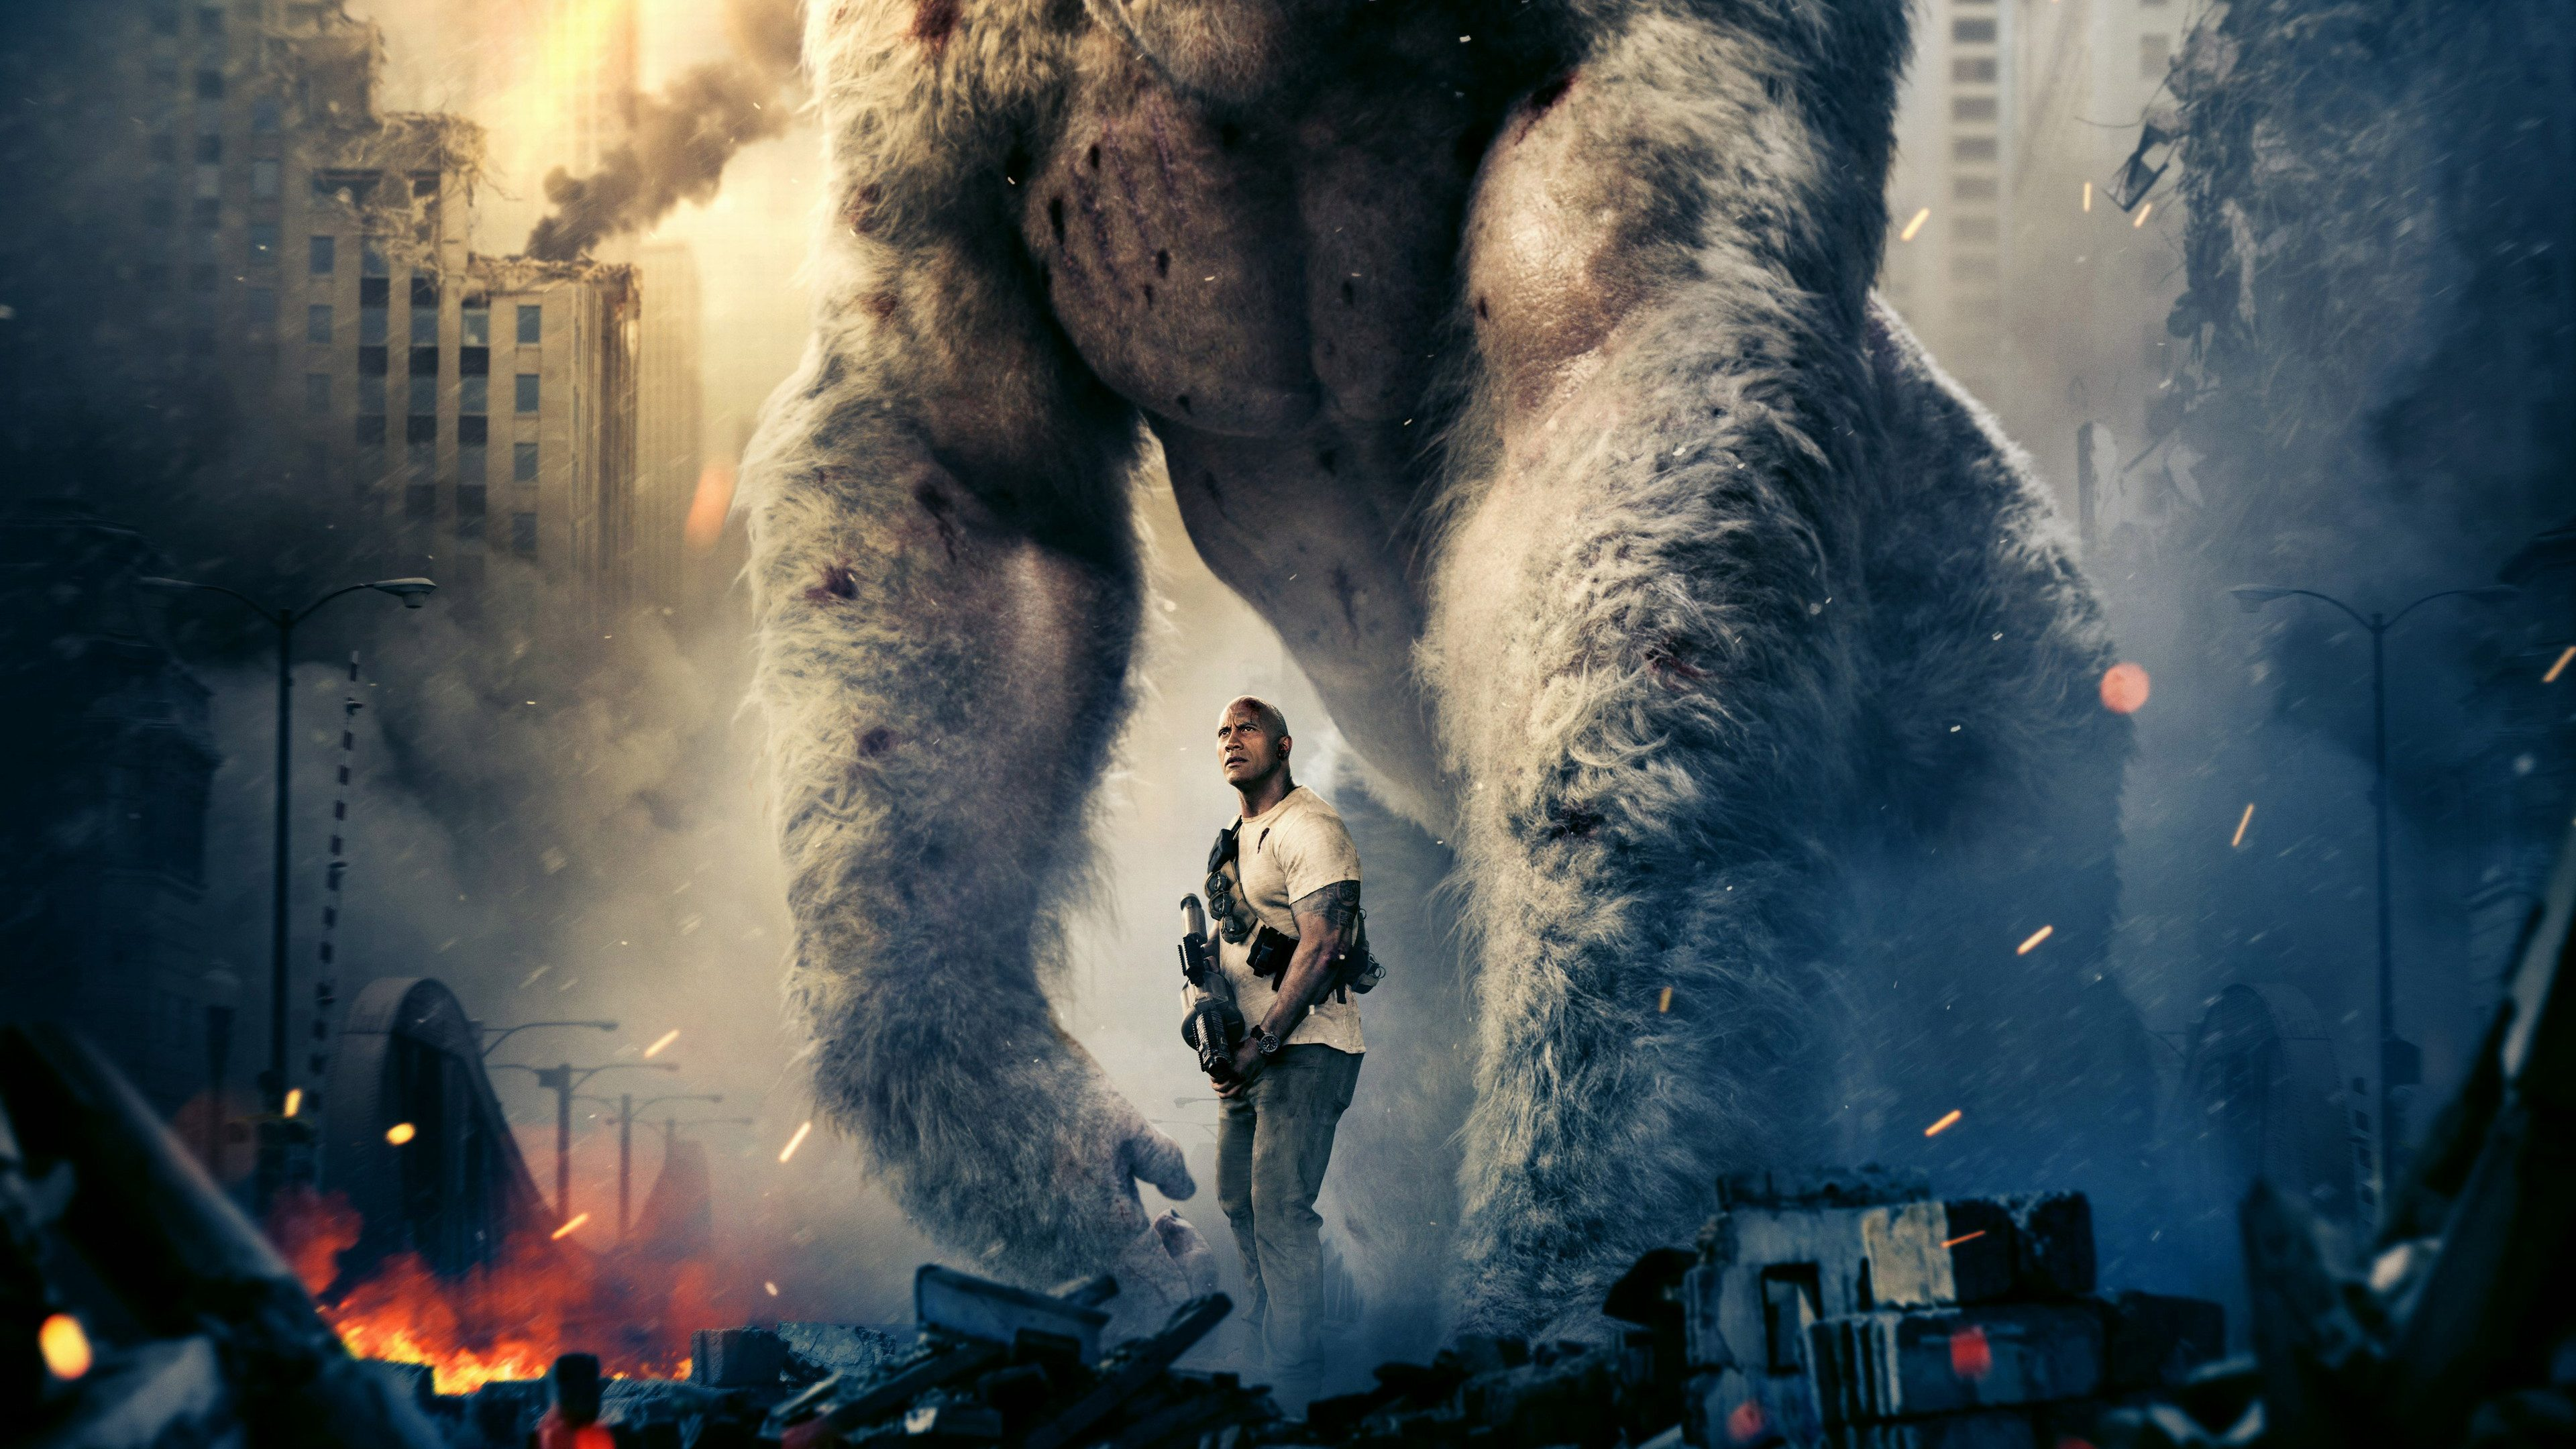 Rampage Movie Hd Wallpapers Download 1080p: Rampage 2018 Movie Wallpaper 4K HD Background